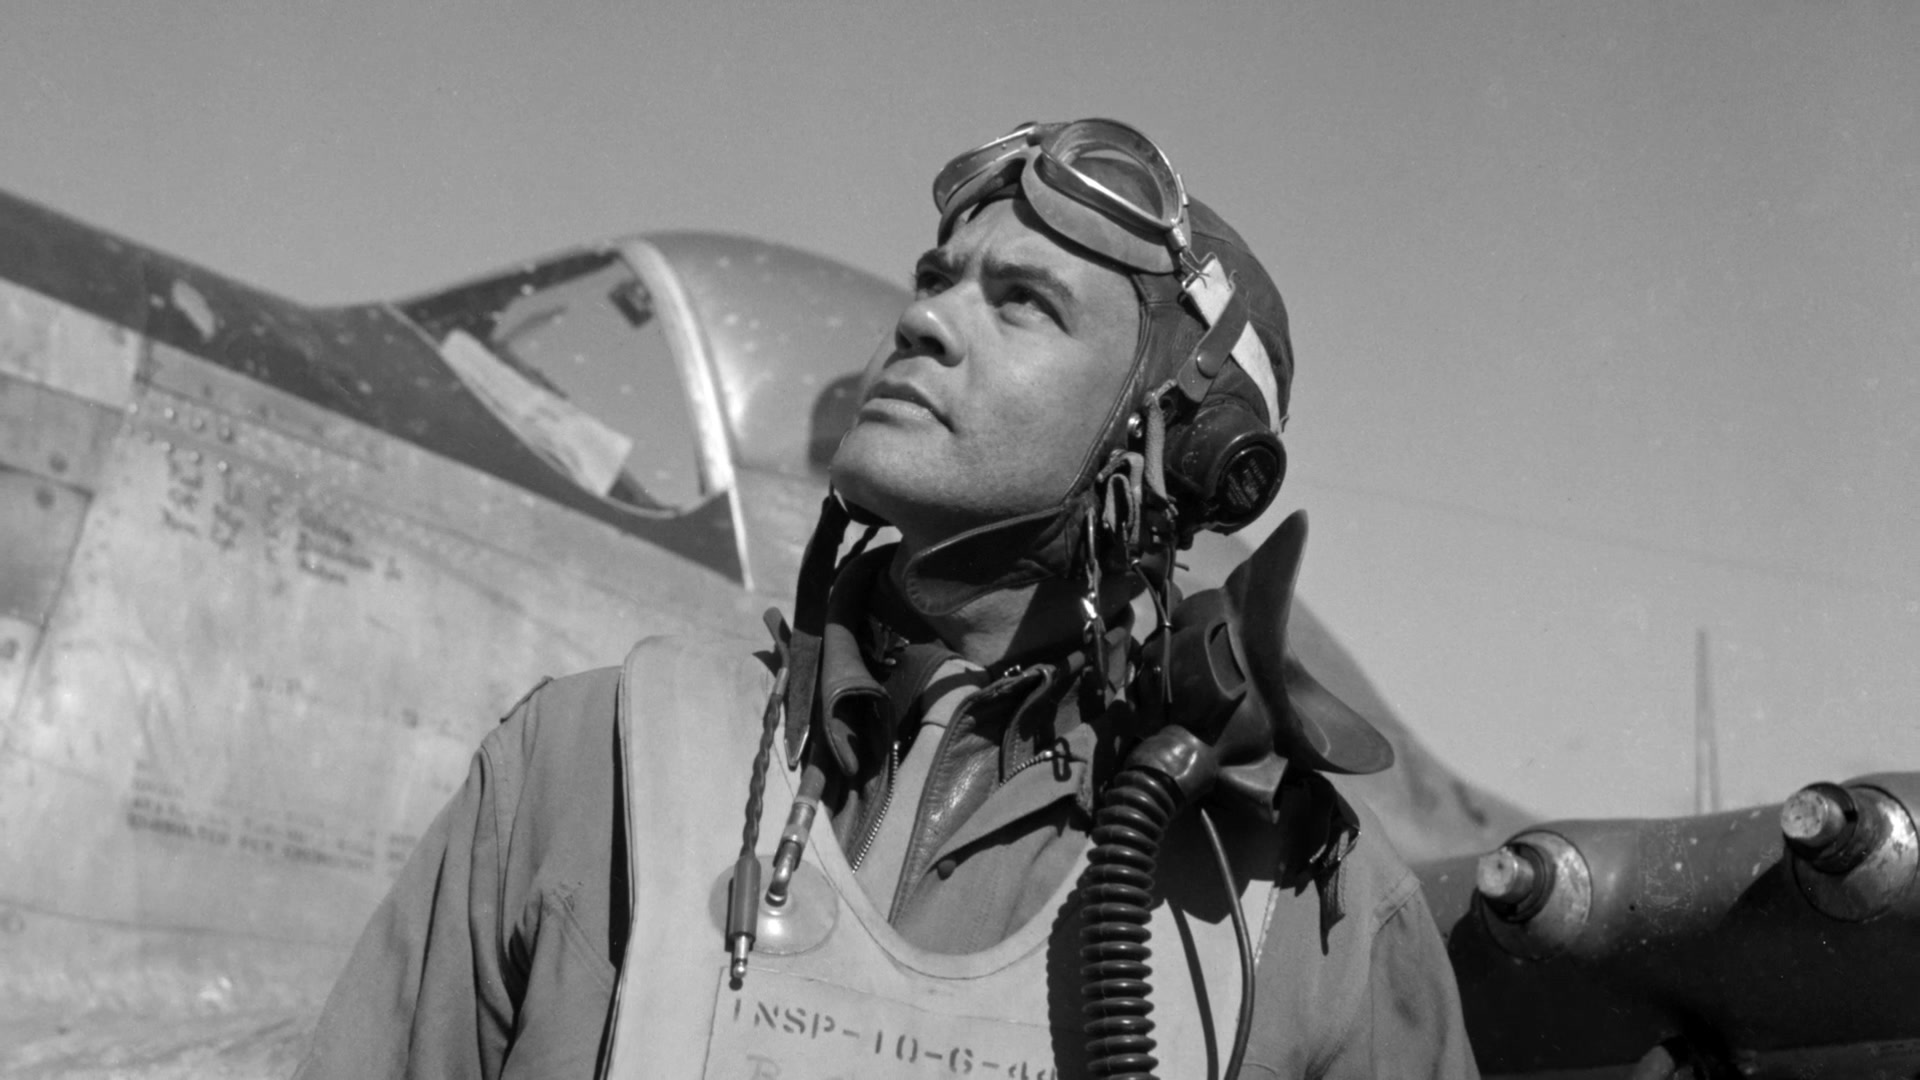 In the February Commentary, Chief Master Sgt. James Loper, 10th Air Force Command Chief, discusses the legacy of 960th Cyberspace Wing squadrons, by tracing their lineage back to the Tuskegee Airmen.